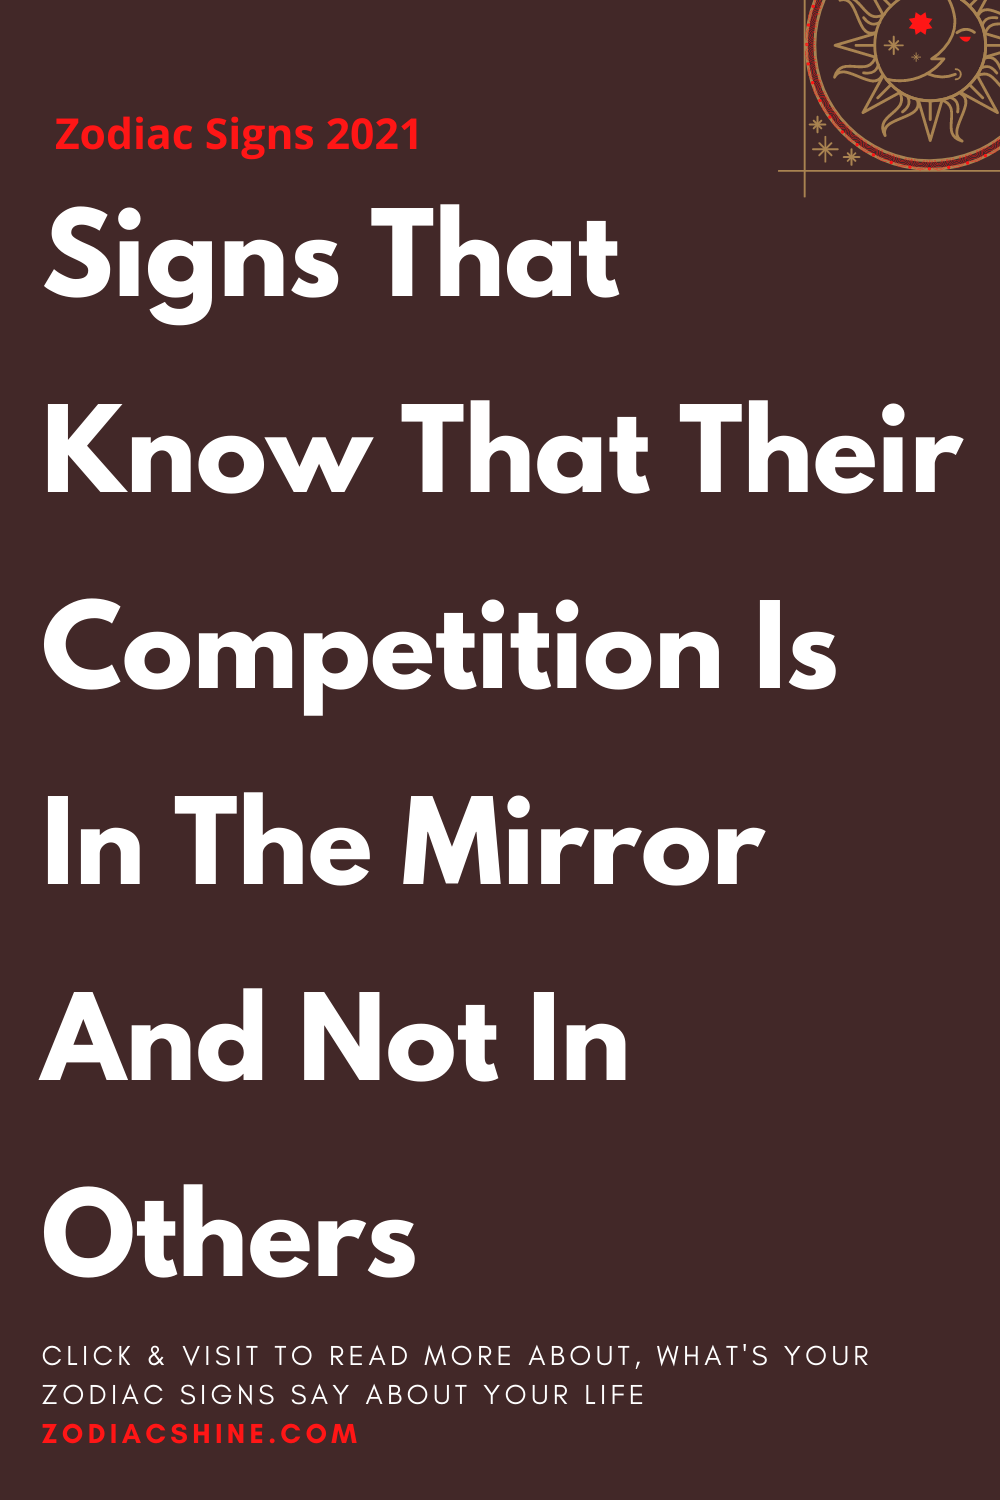 Signs That Know That Their Competition Is In The Mirror And Not In Others